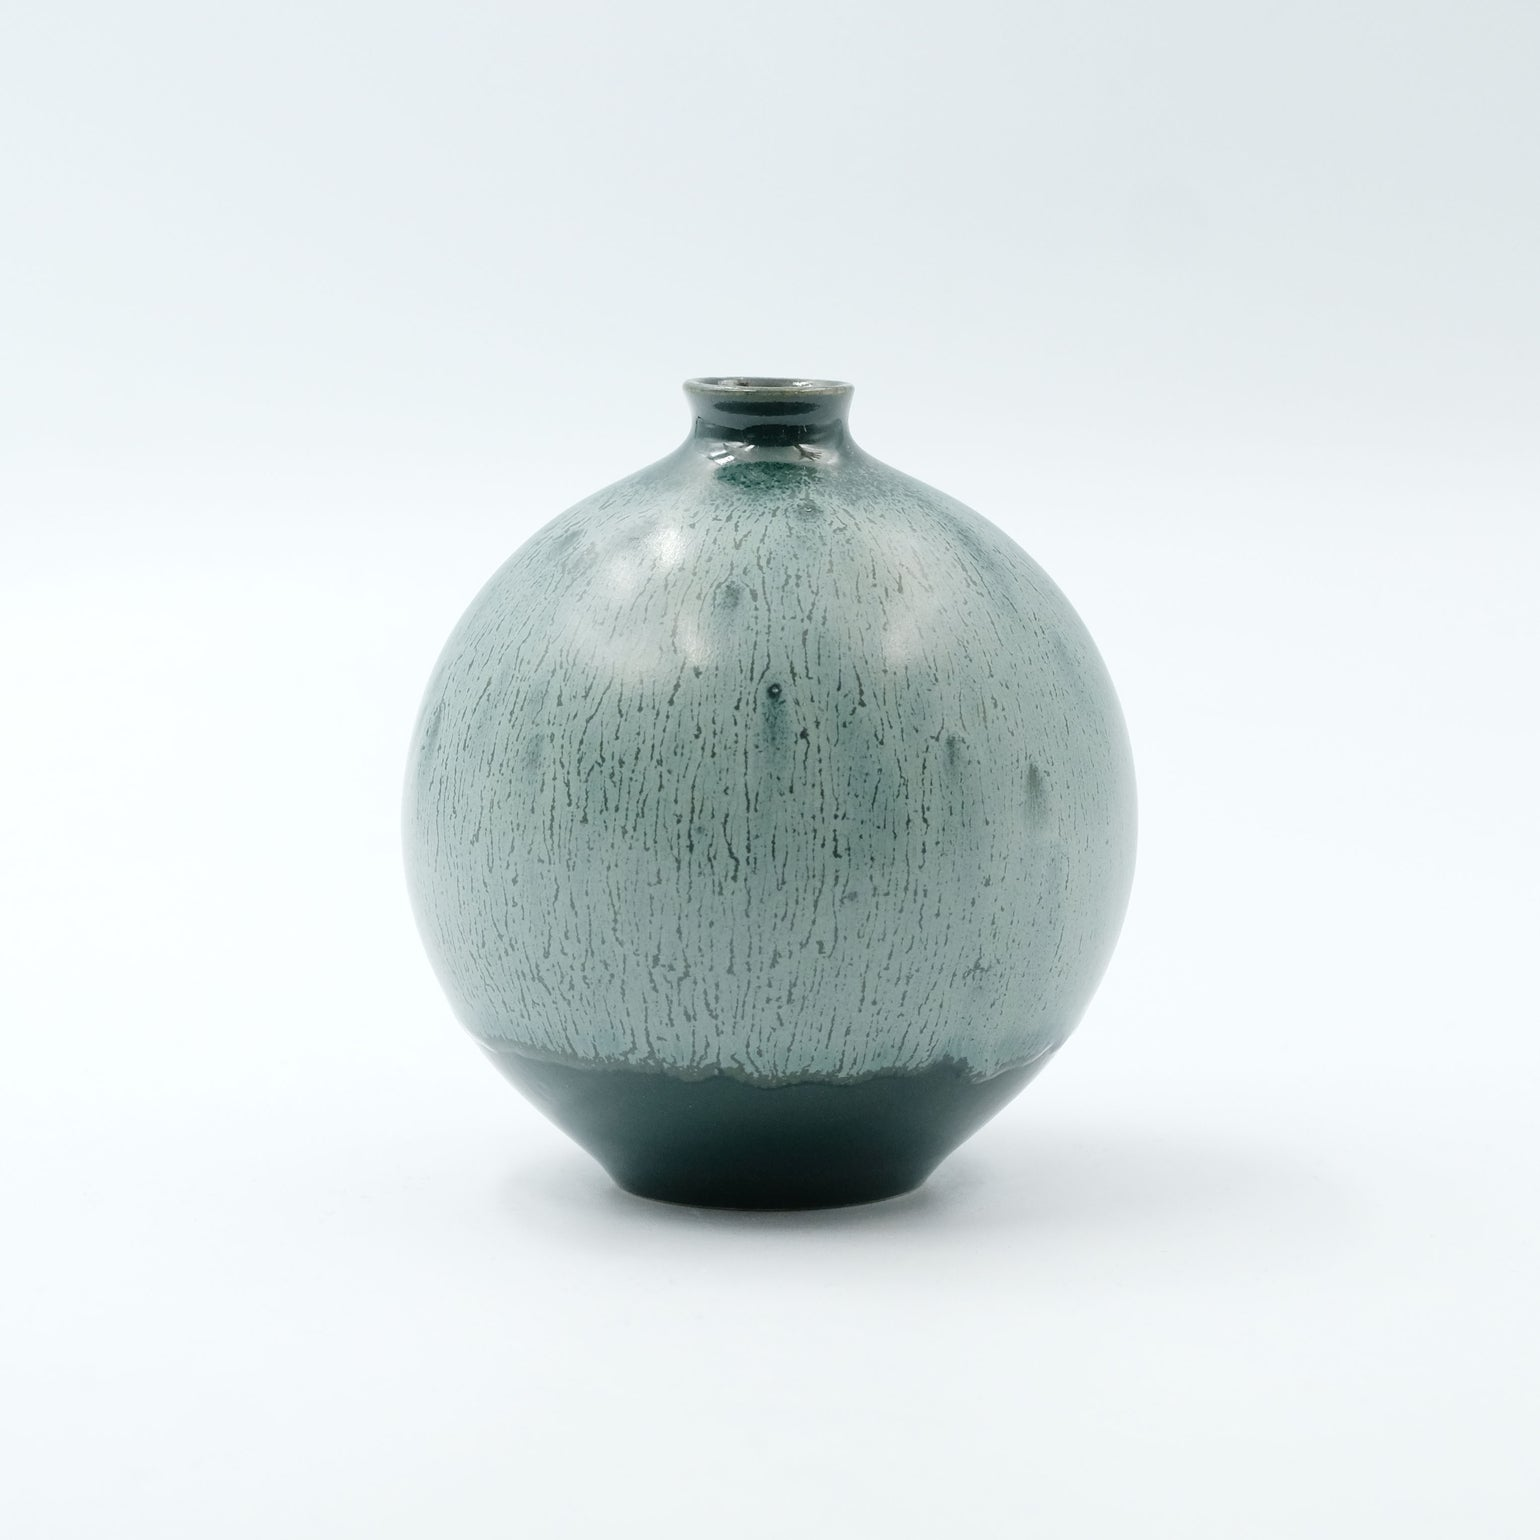 Image of SMALL BULB VASE IN GREEN AND SILVER